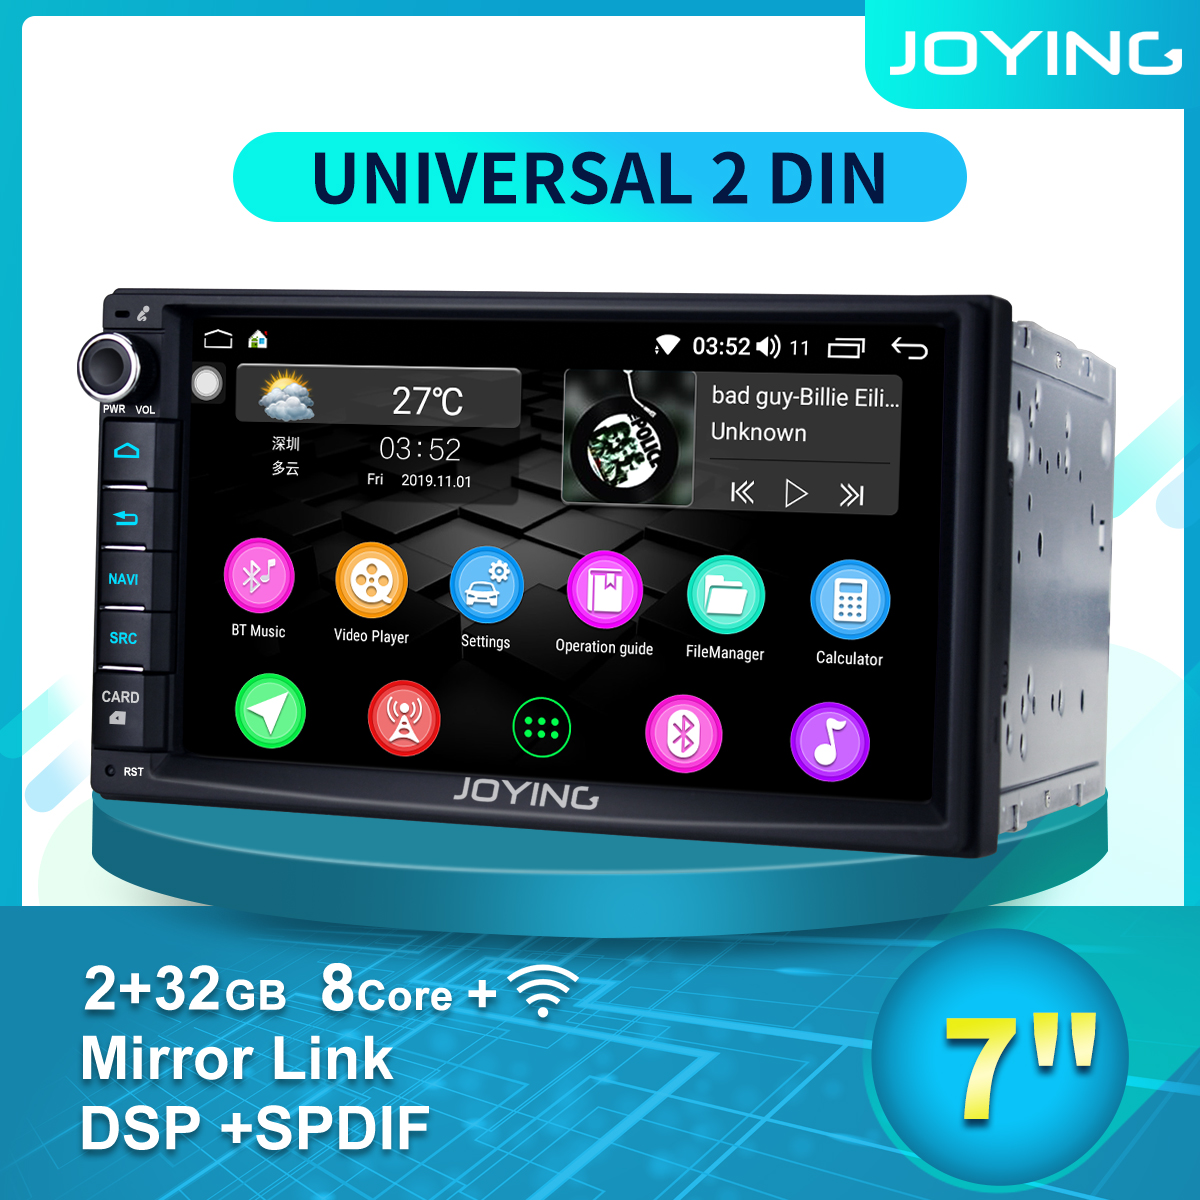 JOYING 7Auto Head Unit 2GB +32GB Android Universal Car Radio Stereo Double 2 2Din GPS No DVD CD Player Built in DSP Mirror Link image